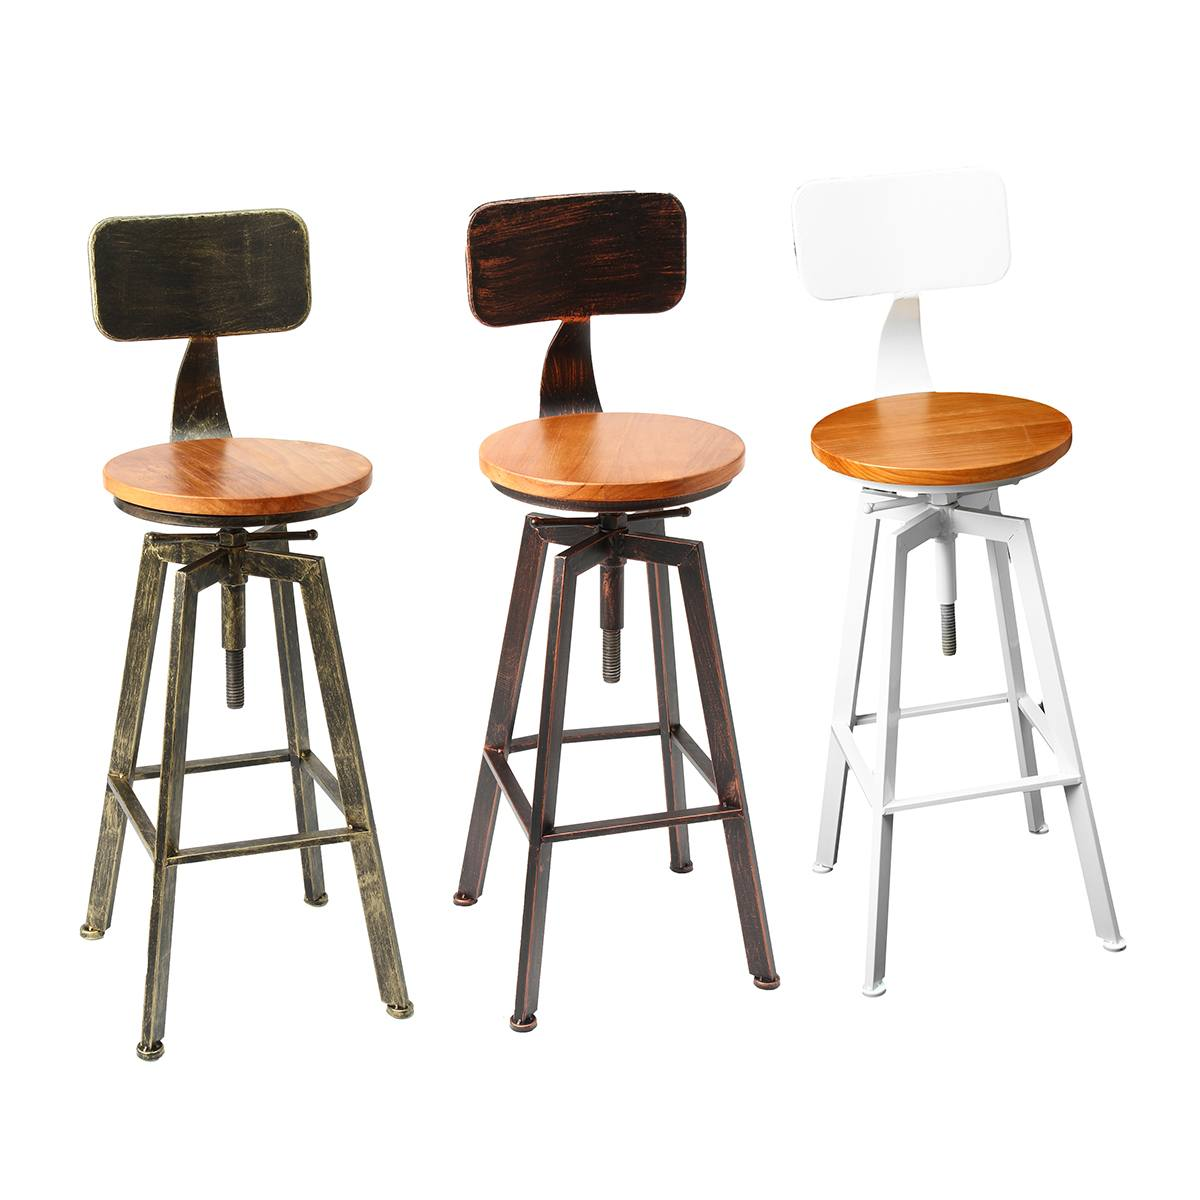 Industrial Wood Adjustable Seat Barstool High Chair: 3 Colors Retro Industrial Bar Chair Stool Adjustable Wood